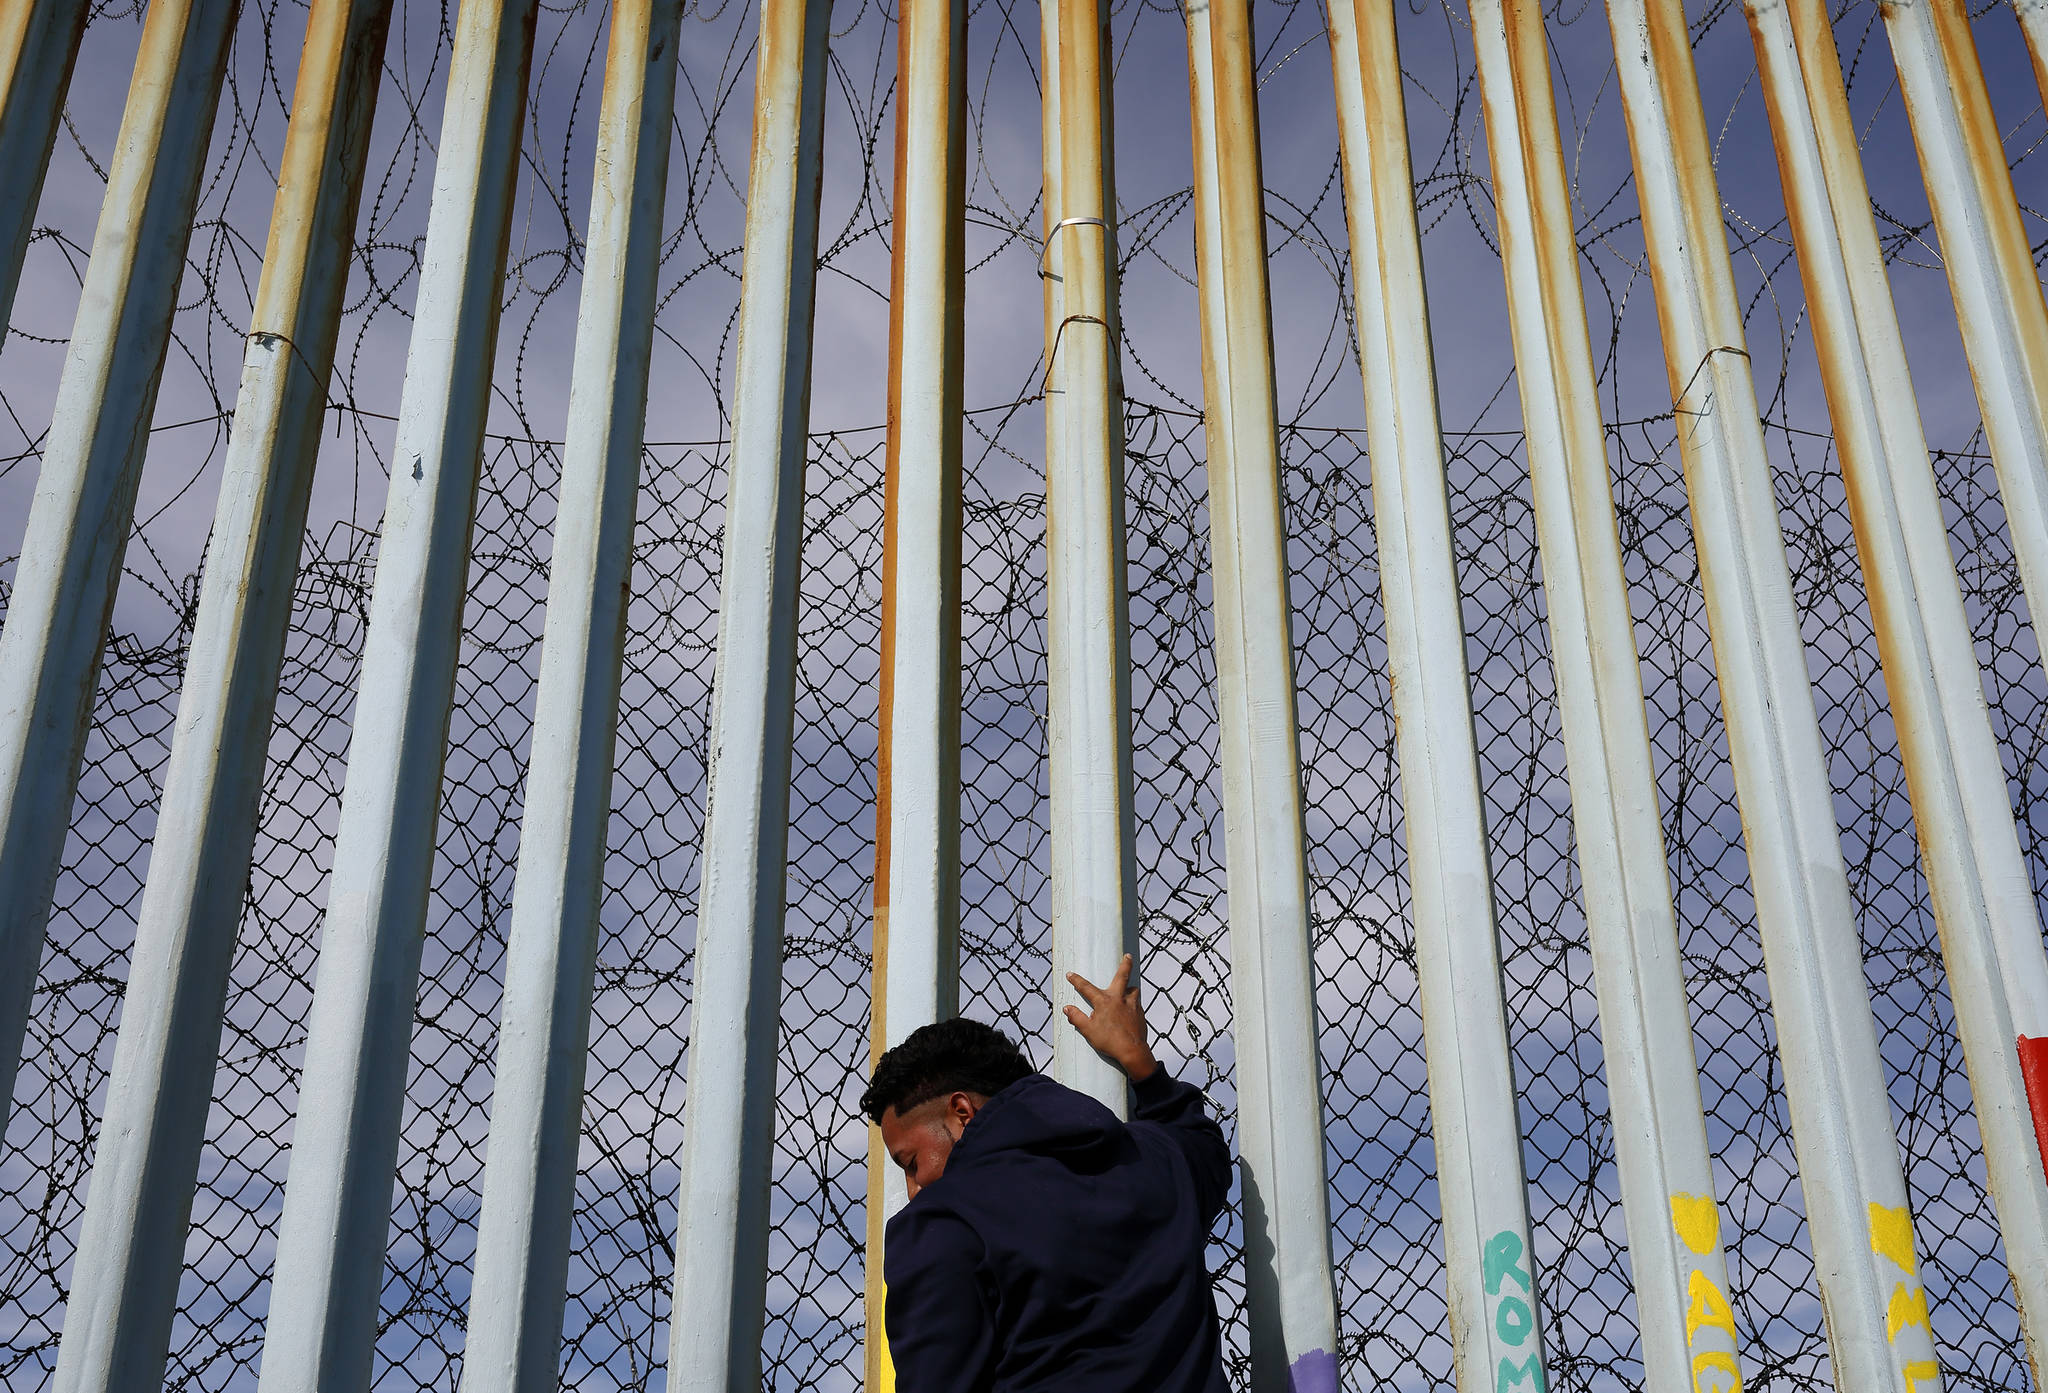 In this Jan. 8, 2019 photo, a man holds on to the border wall along the beach, in Tijuana, Mexico. The migrant caravan that was seized upon by U.S. President Donald Trump in the run-up to the 2018 election has quietly dwindled to a few hundred people, with many of them having crossed into the U.S. or put down roots in Mexico. (Gregory Bull | Associated Press)